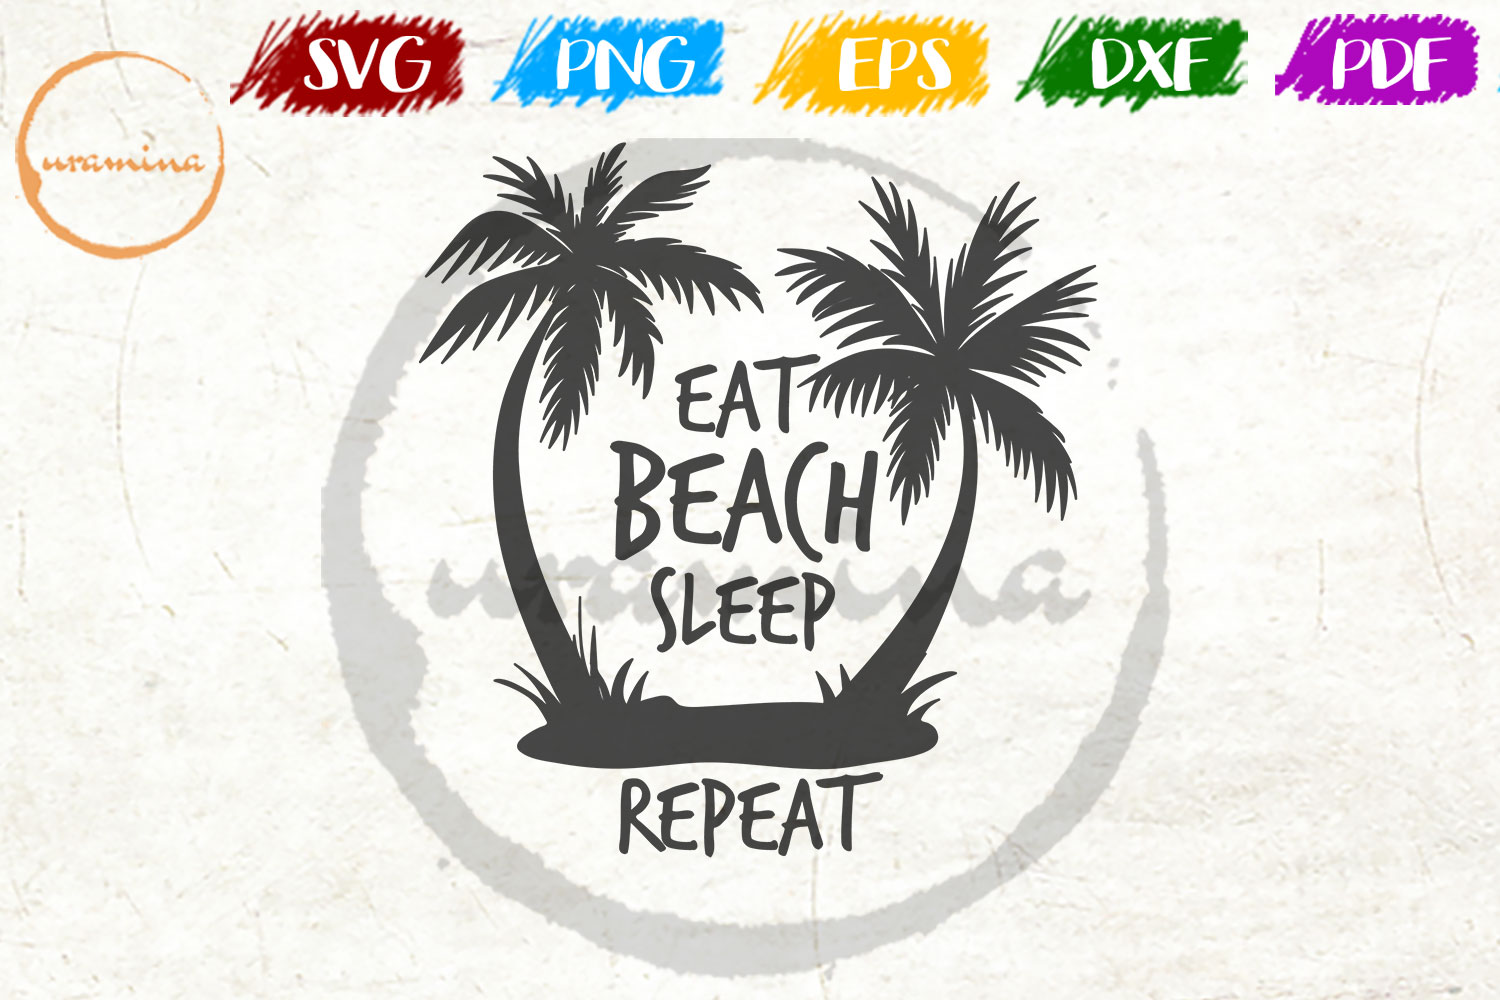 Download Free Eat Beach Sleep Repeat Graphic By Uramina Creative Fabrica for Cricut Explore, Silhouette and other cutting machines.